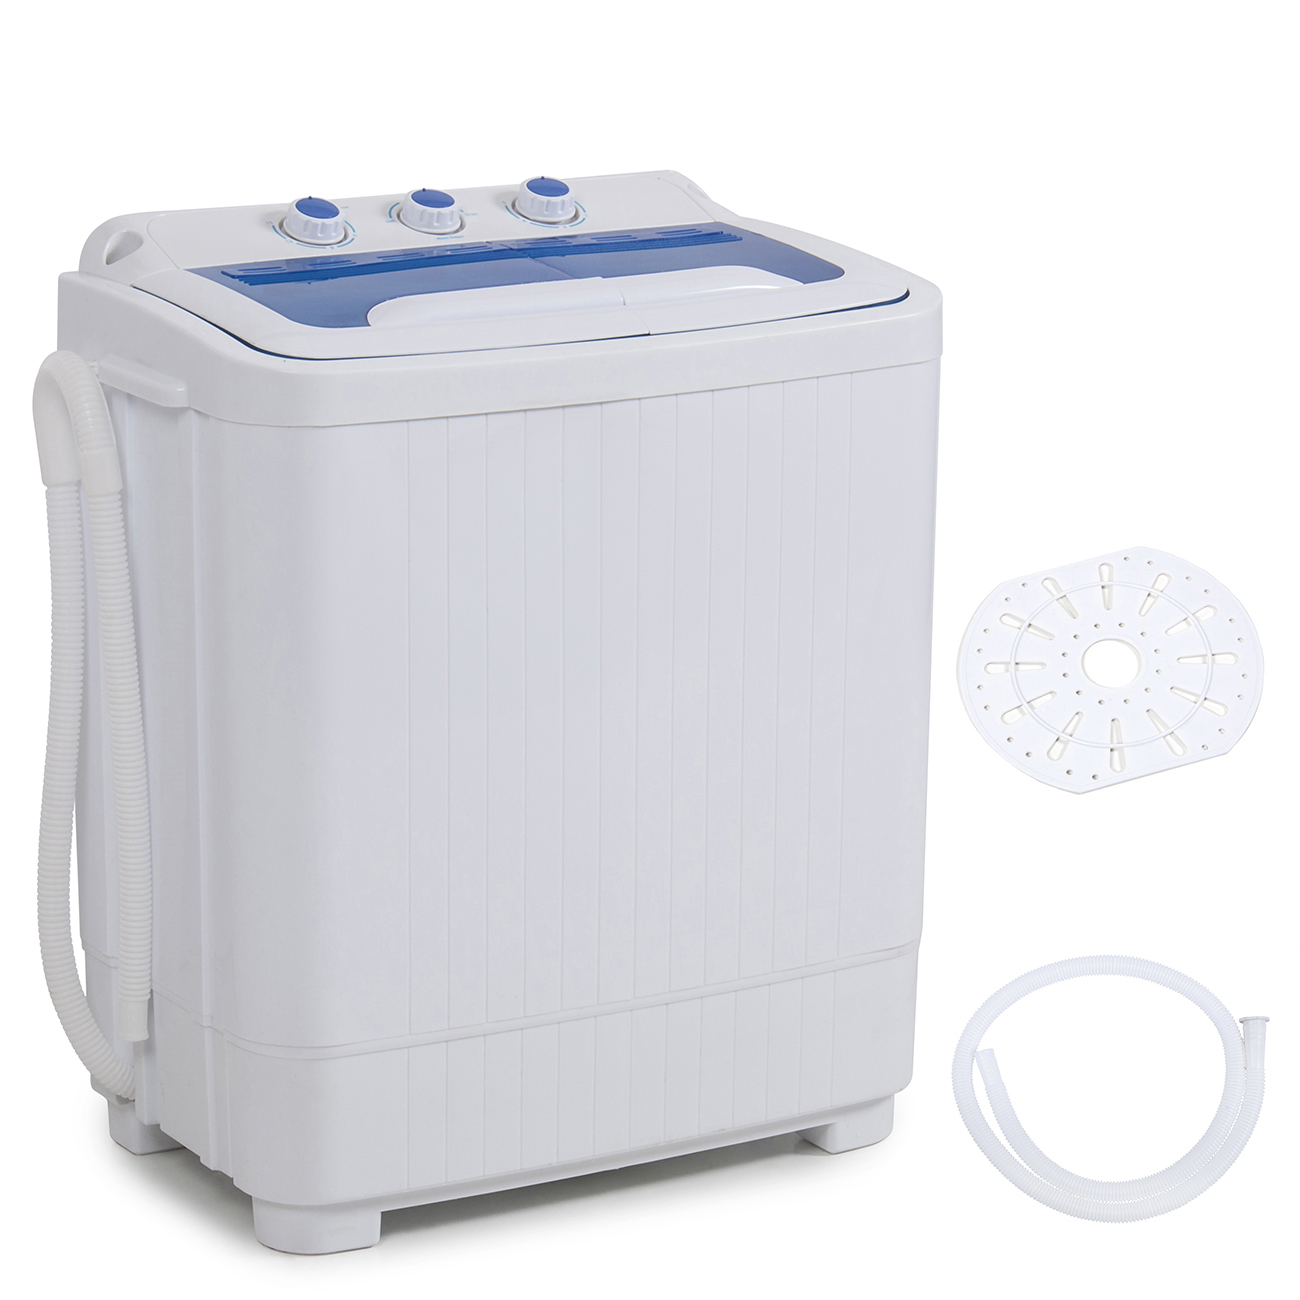 Mini Washing Machines Della Mini Washing Machine Portable Compact Washer And Spin Dry